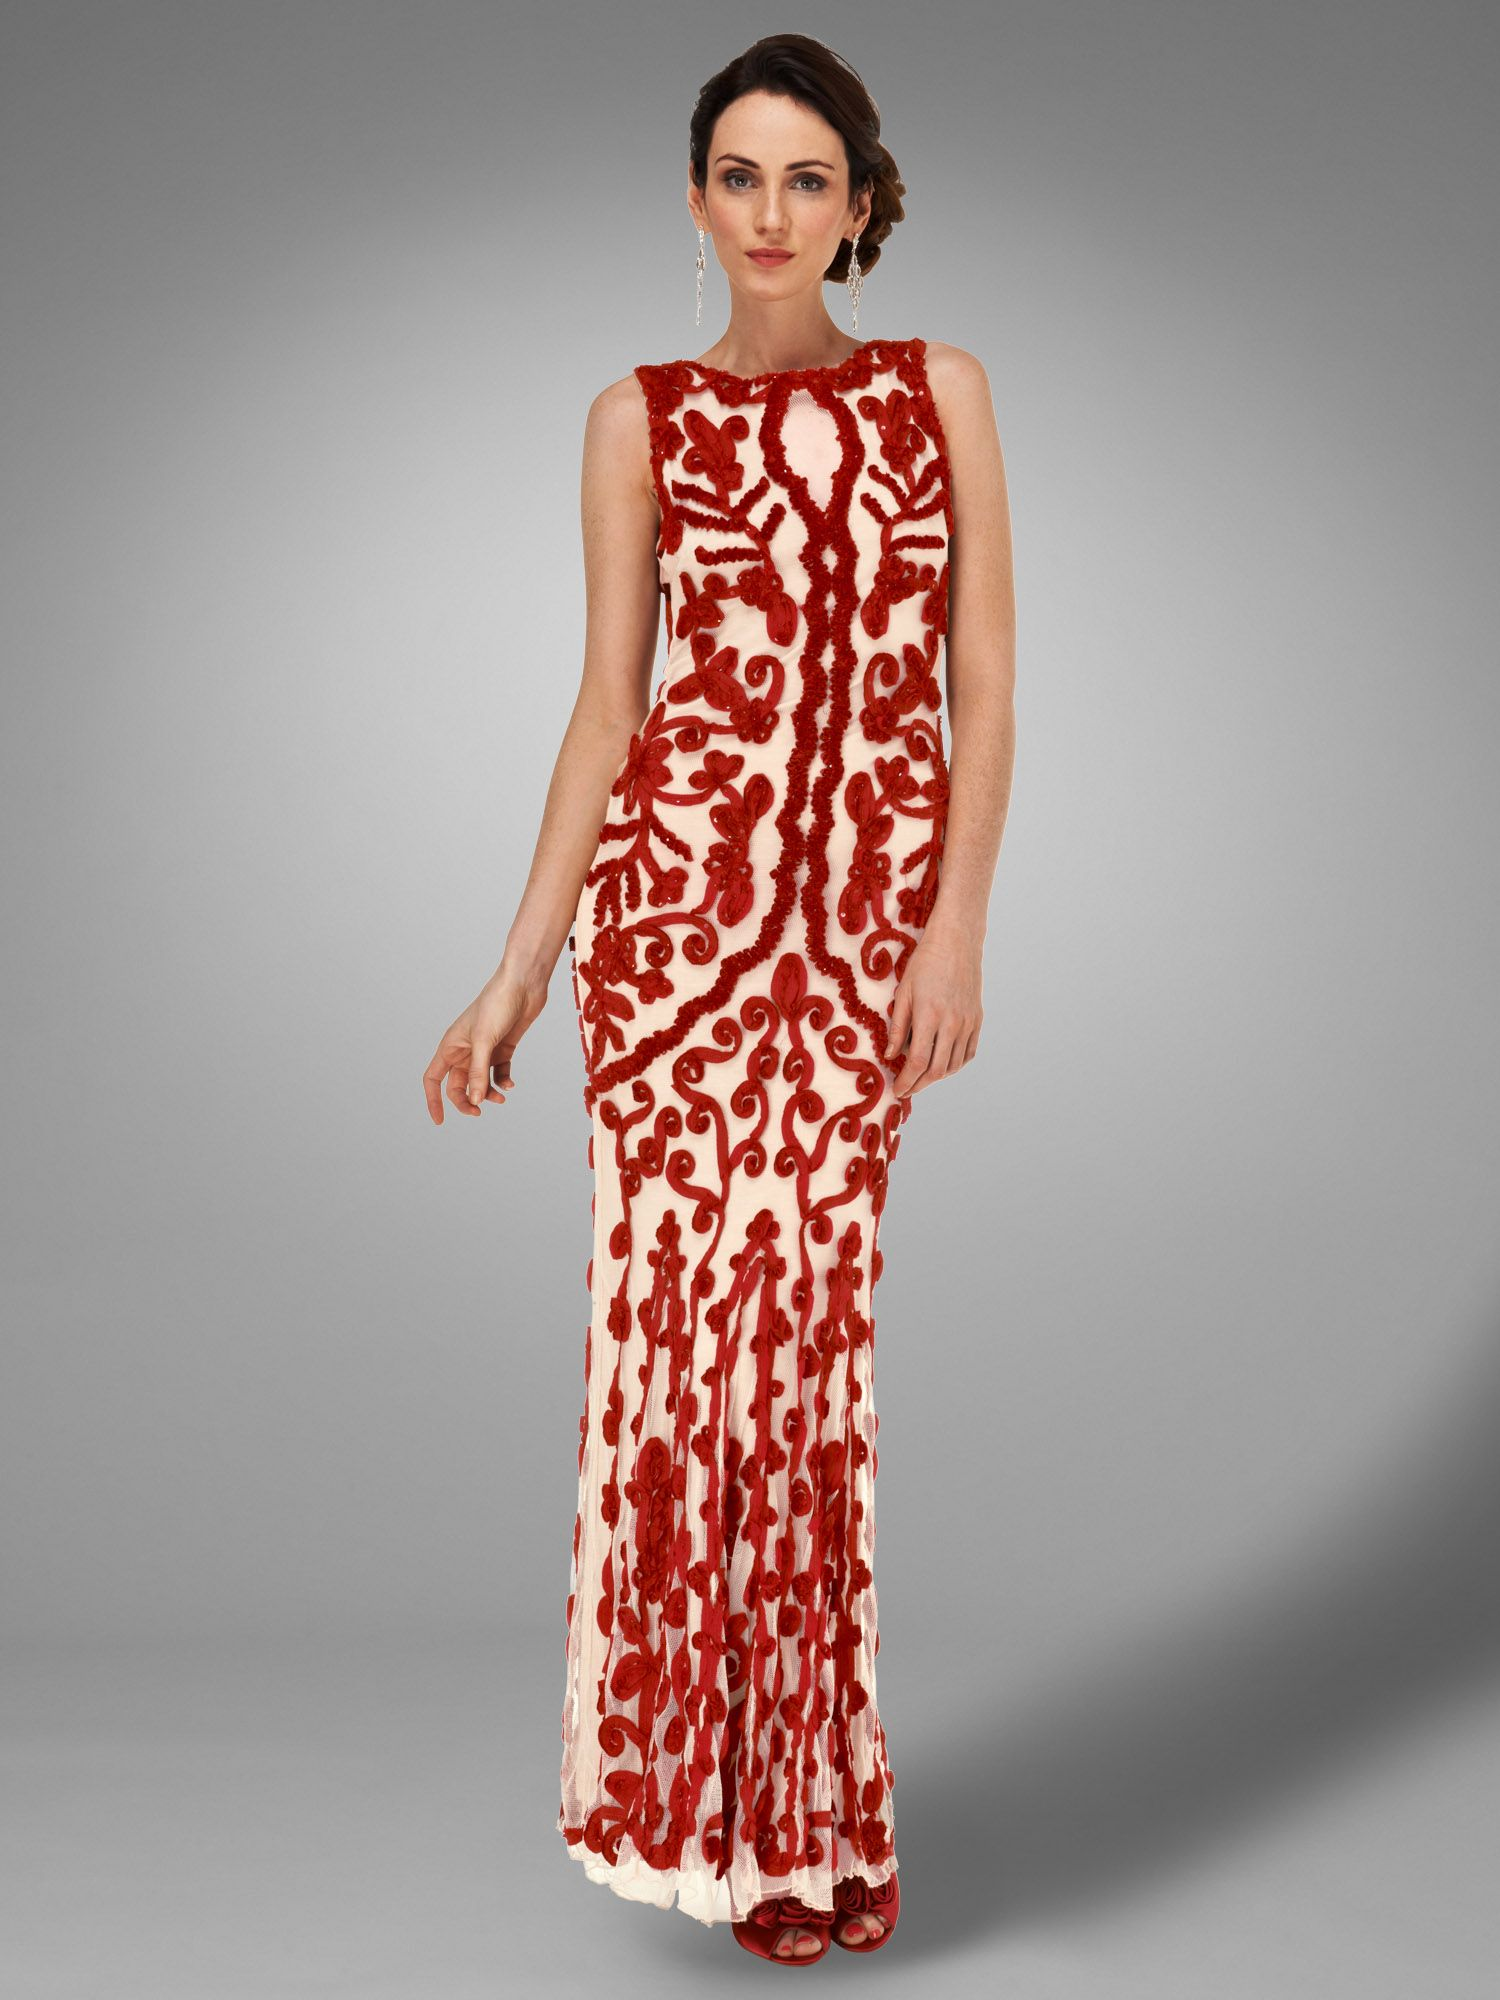 Mayfair tapework full length dress